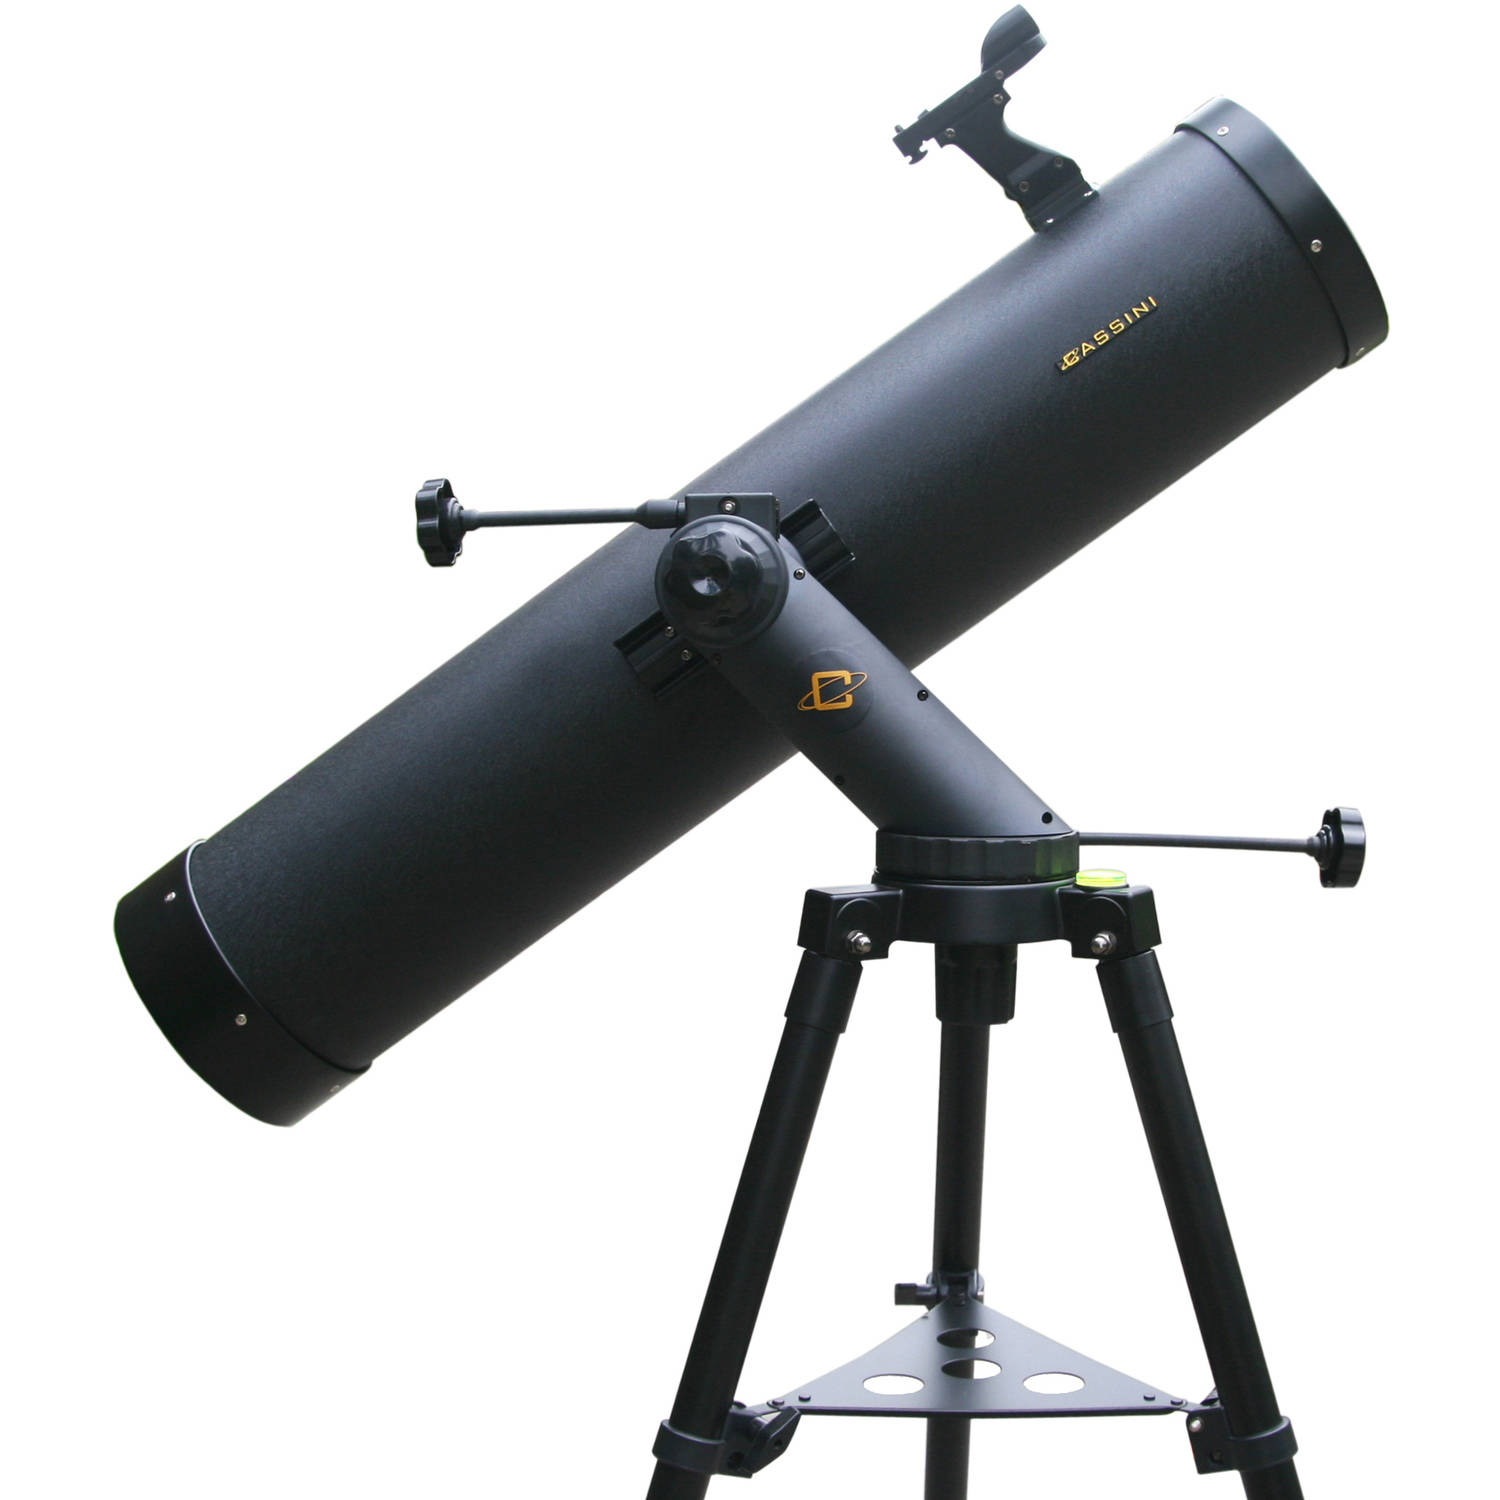 Cassini 900mm x 135mm Tracker Series Astronomical Reflector Telescope with Tripod - Black, C-900135TR